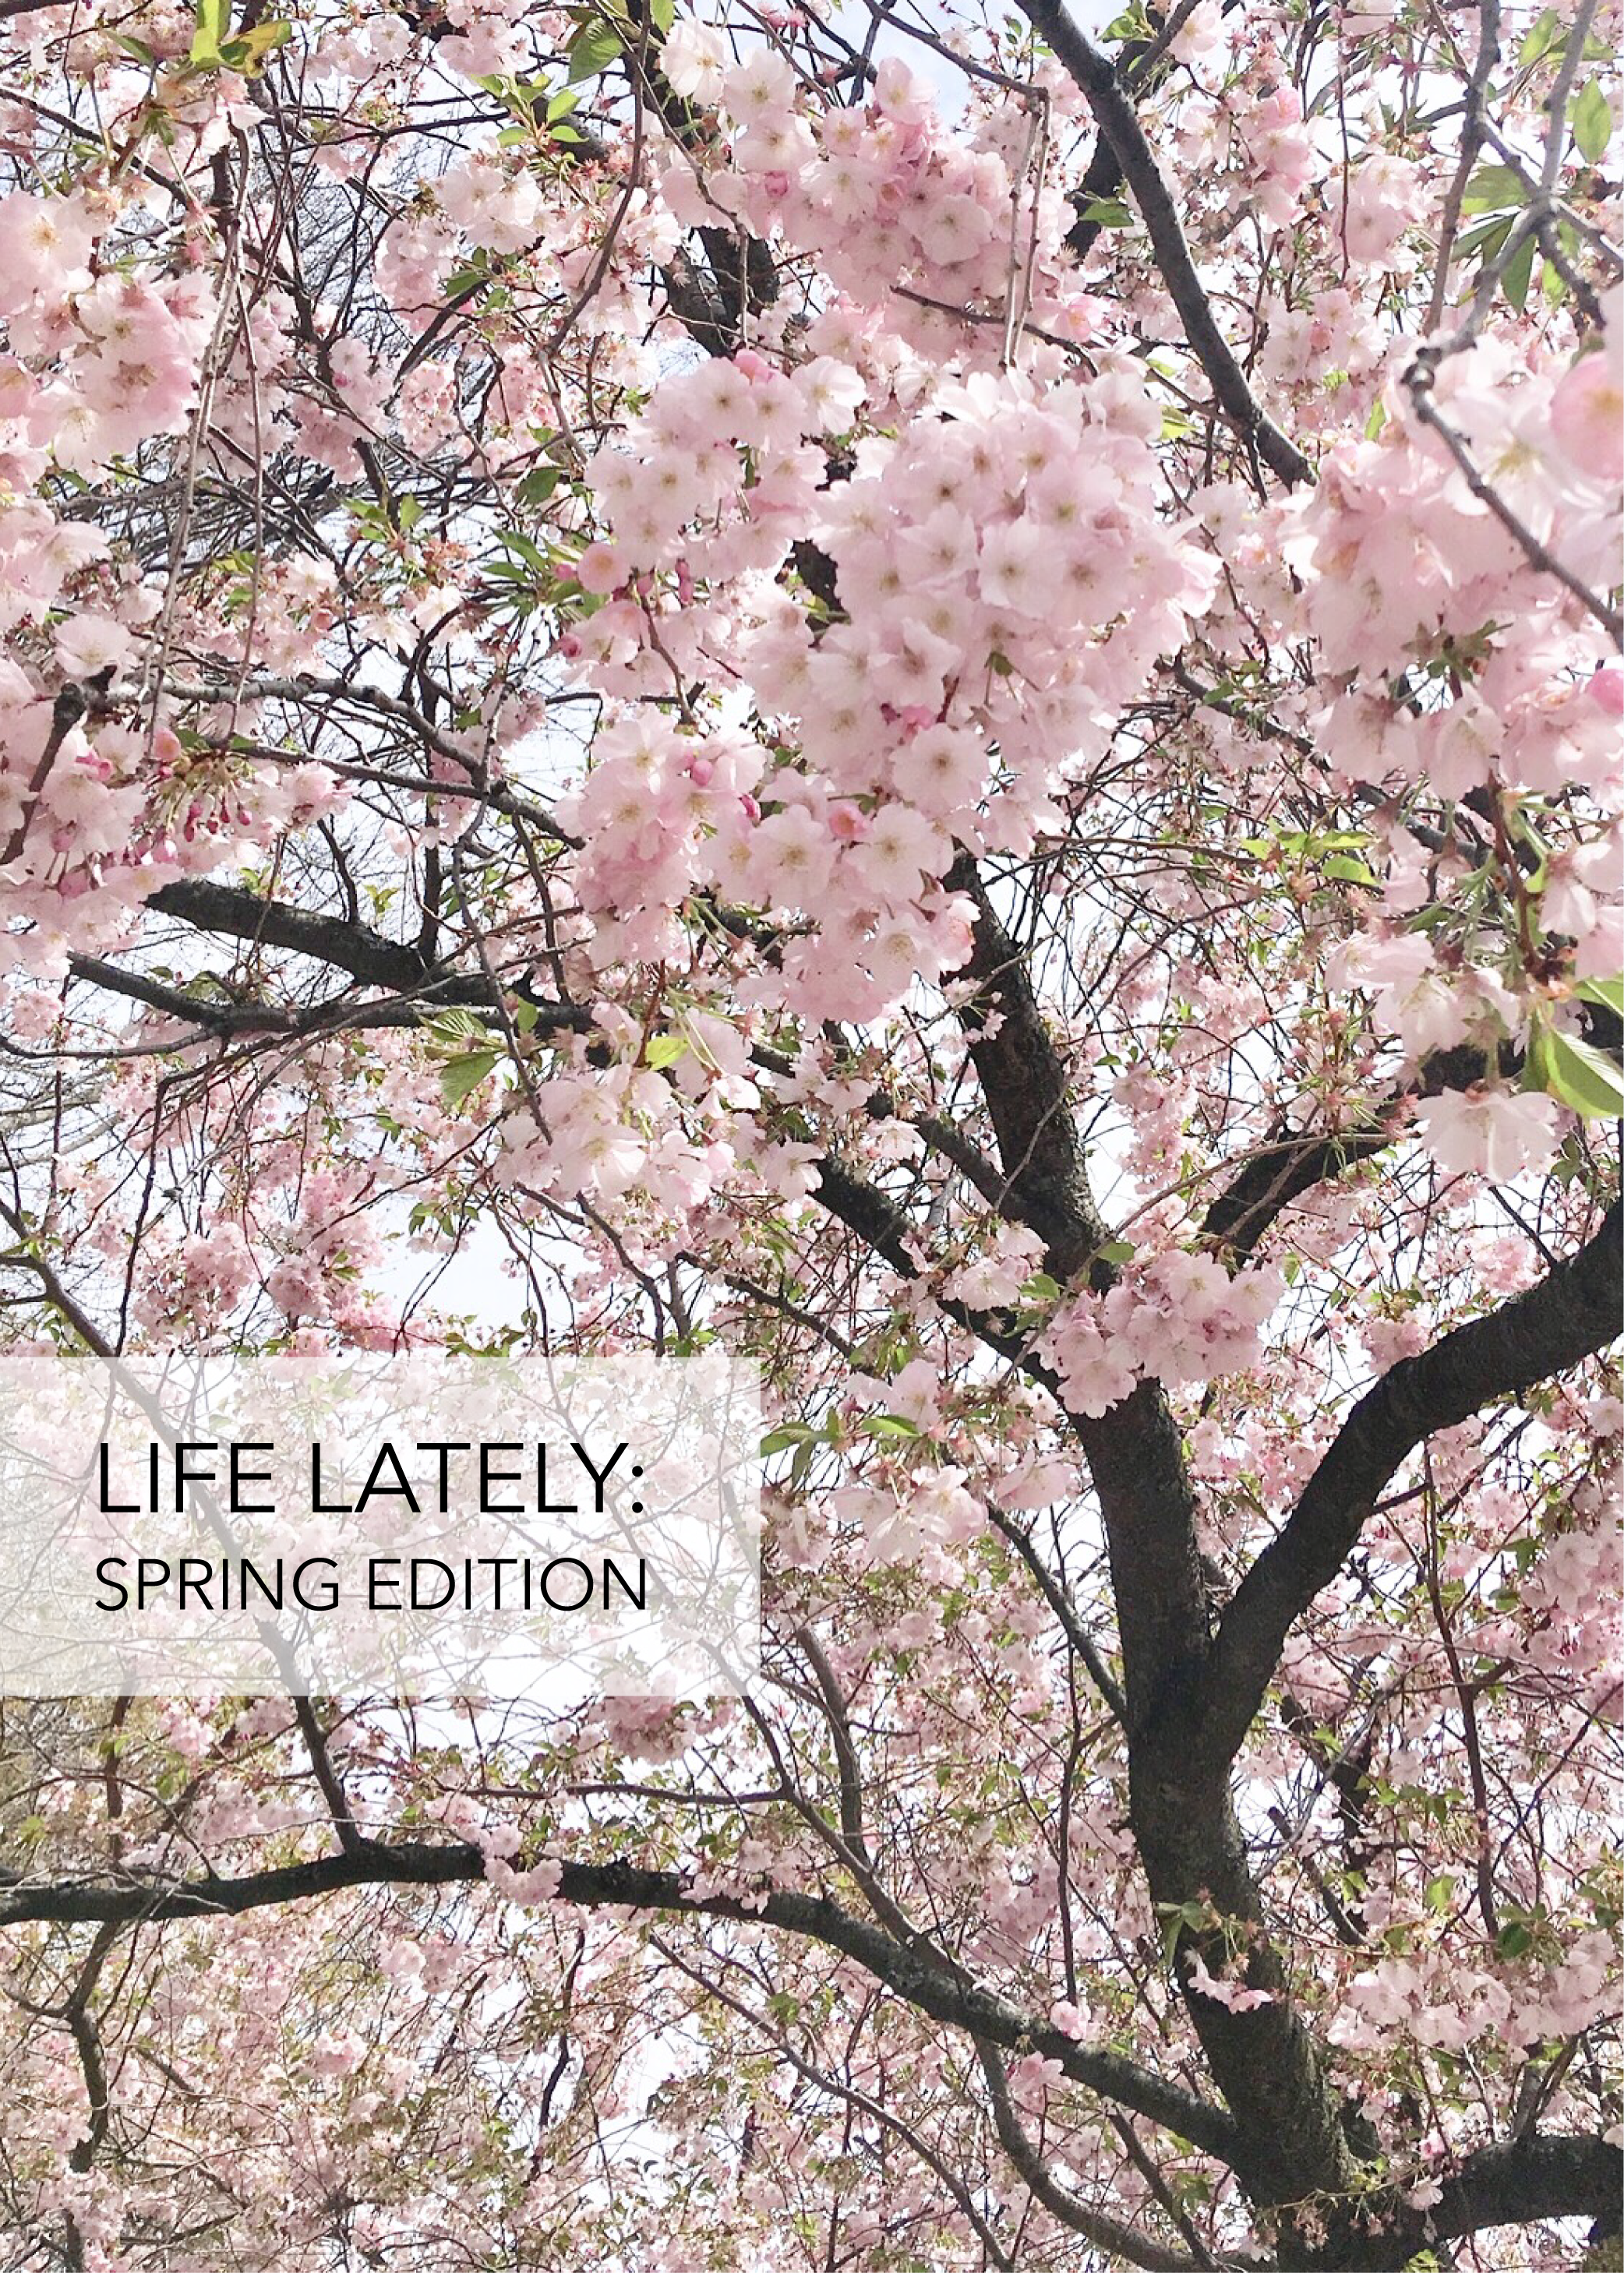 Life Lately: Spring Edition